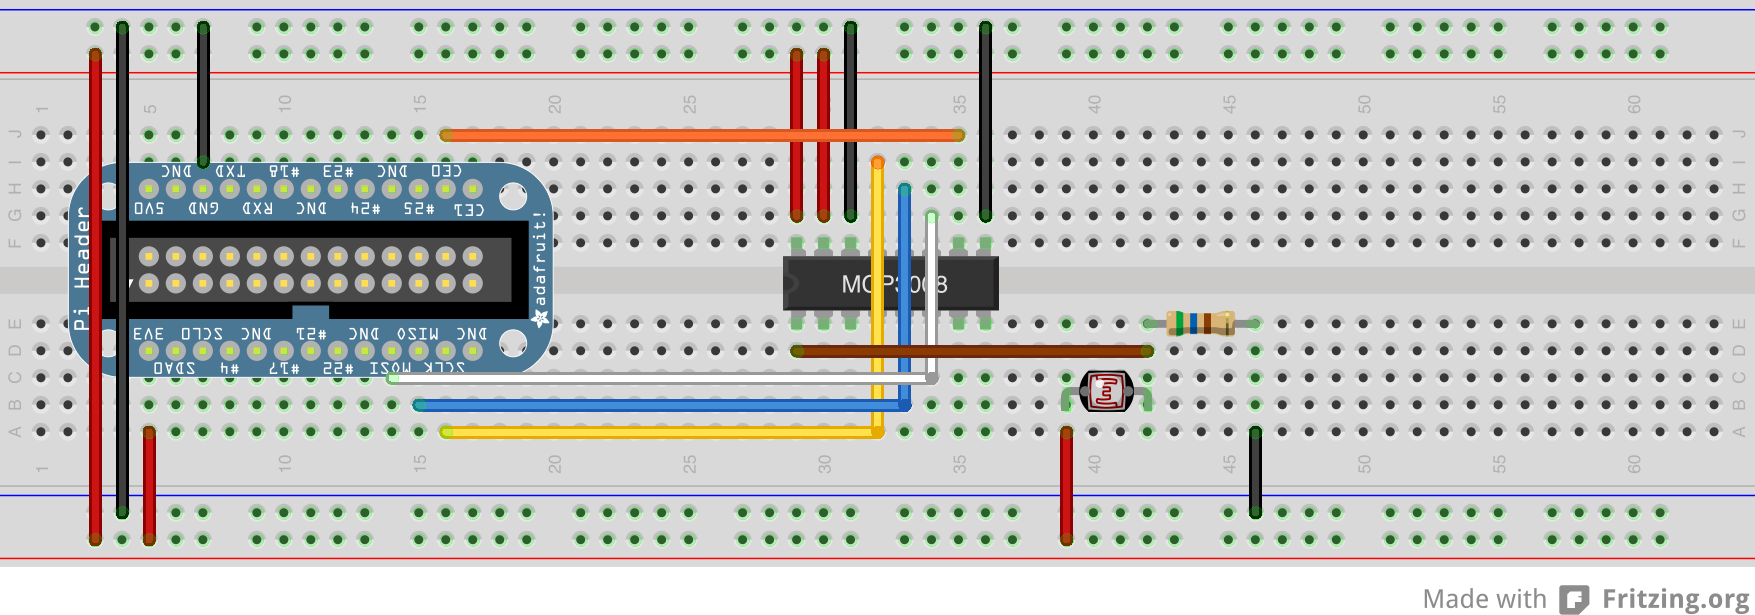 Serial Peripheral Interface Spi Using Wiringpi In Python Mcp3008 Pinout Hardware Breadboard